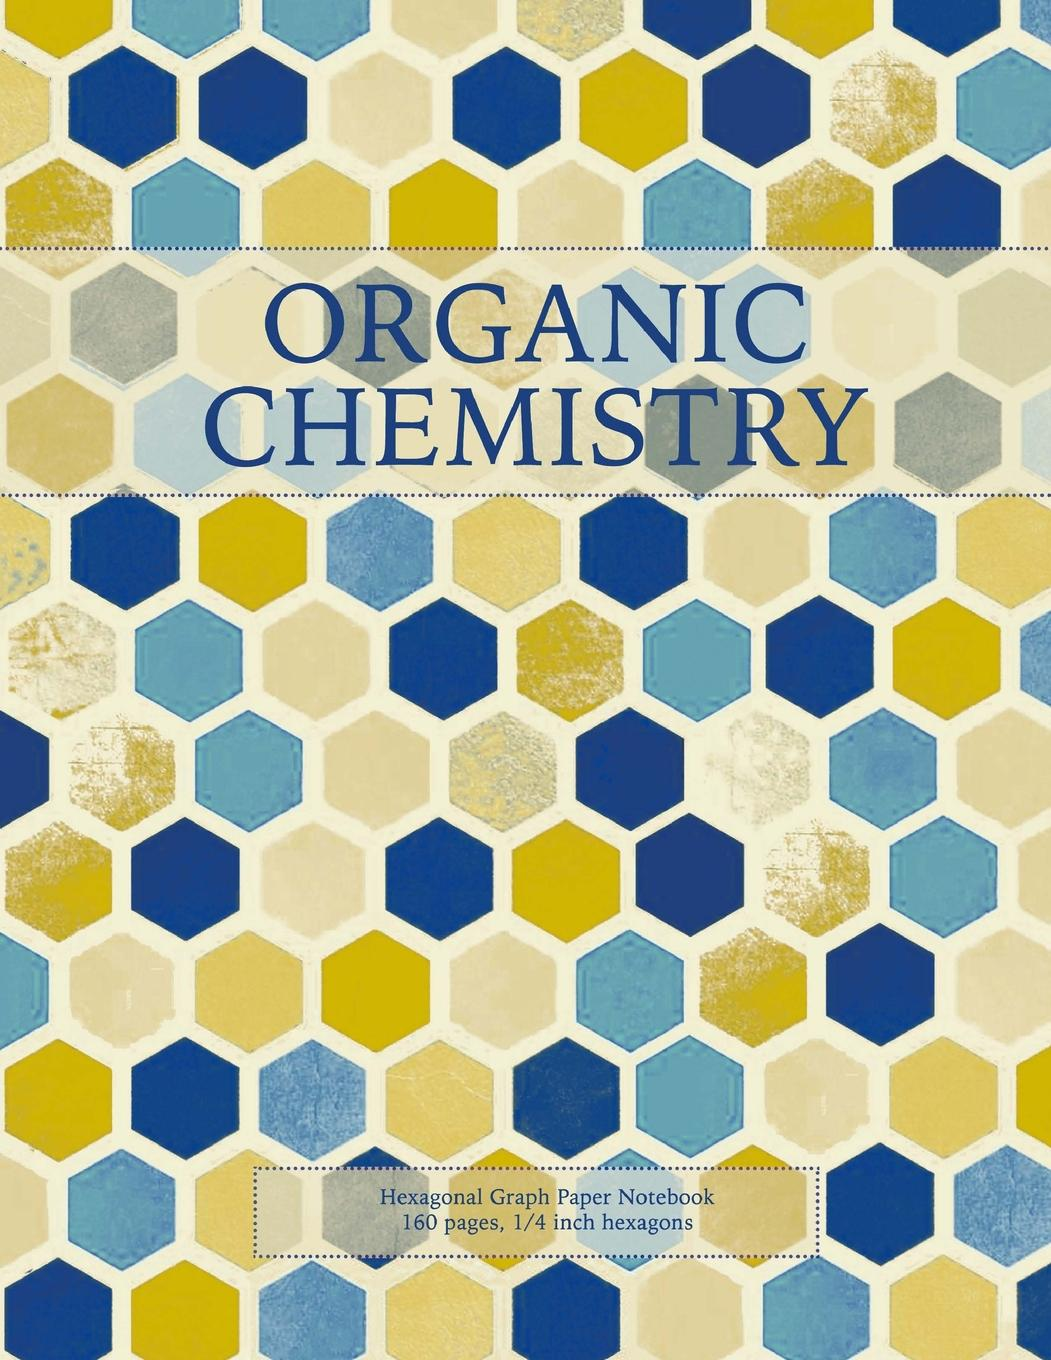 picture about Printable Hex Paper referred to as Natural and organic Chemistry: Hexagonal Graph Paper Laptop, 160 Webpages, 1/4 Inch Hexagons (Paperback)